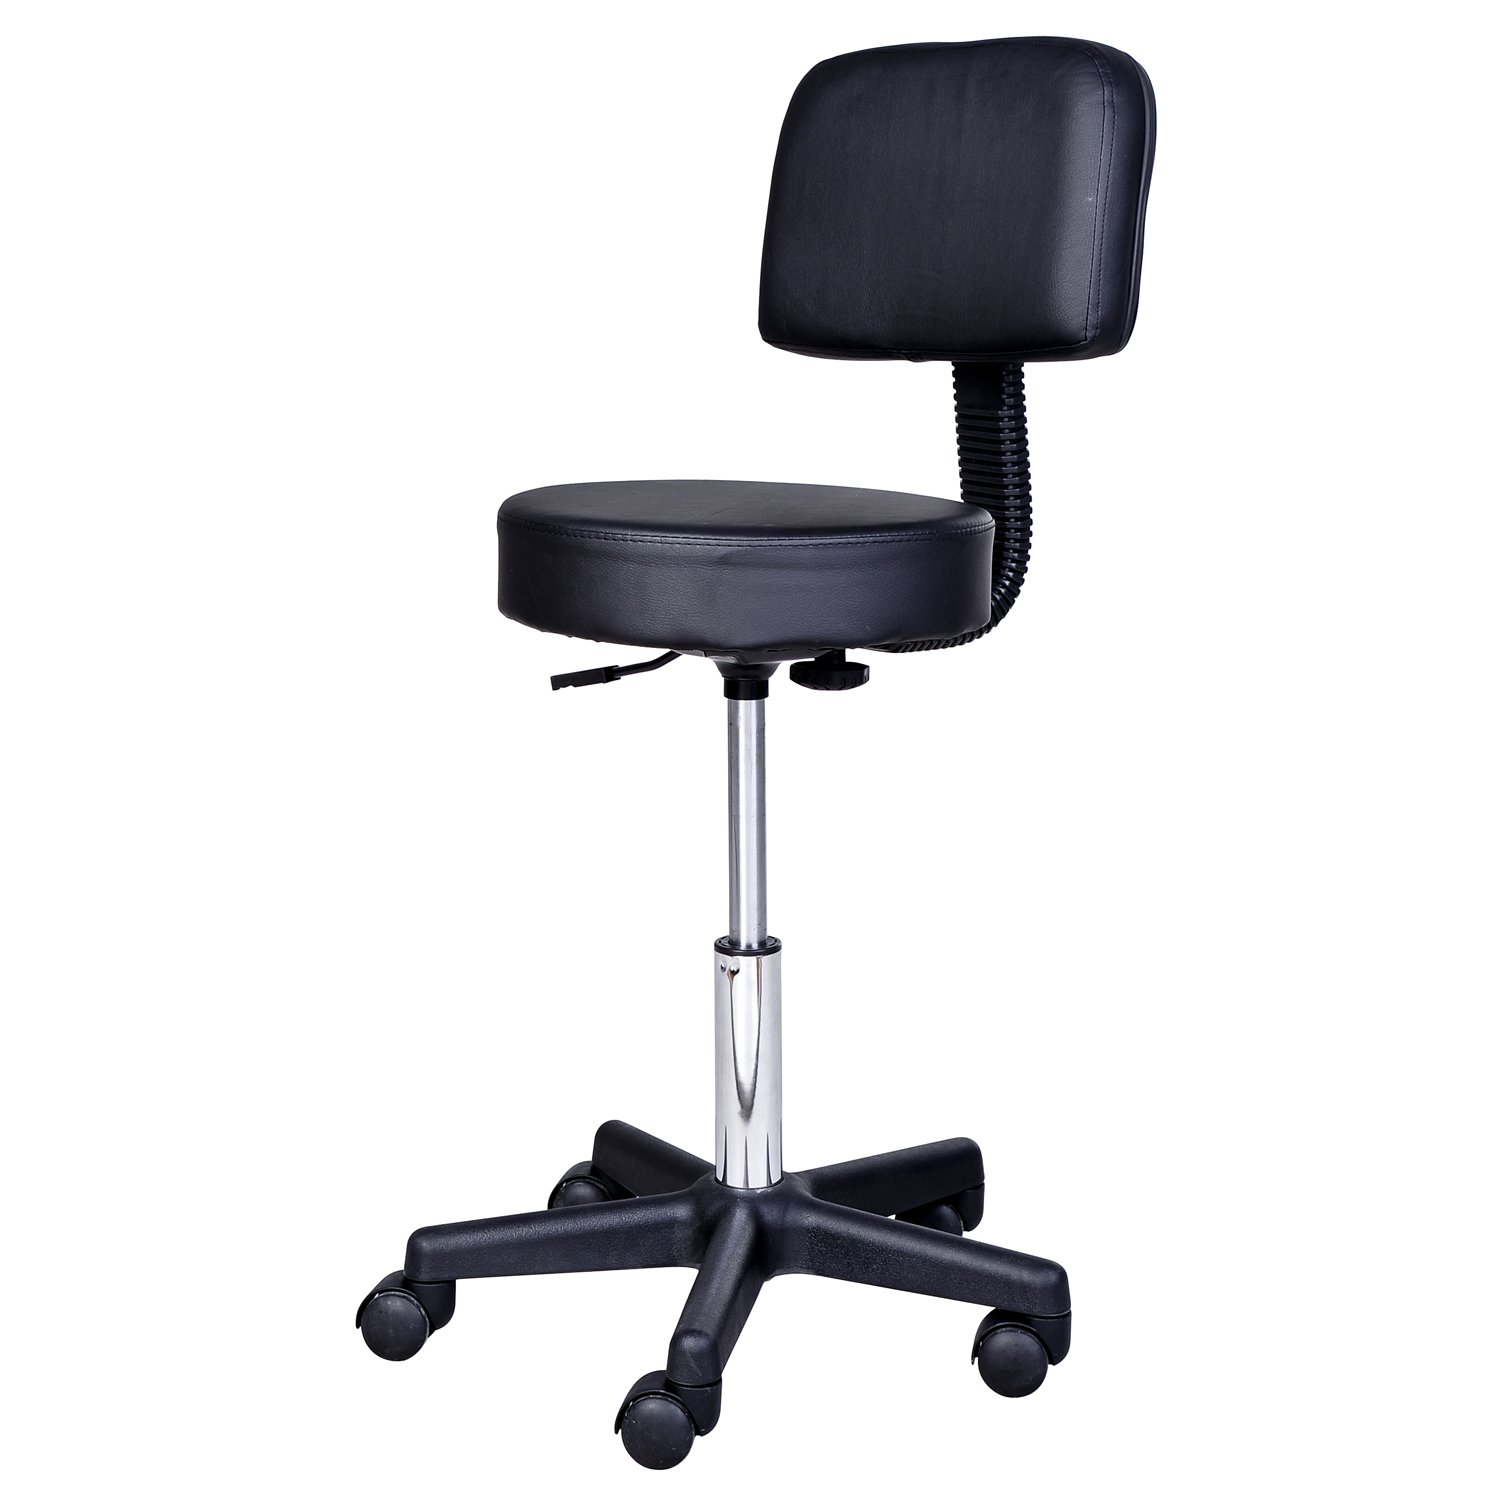 Hom Massage Beauty Salon Spa Chair Stool Swivel Gas Lift